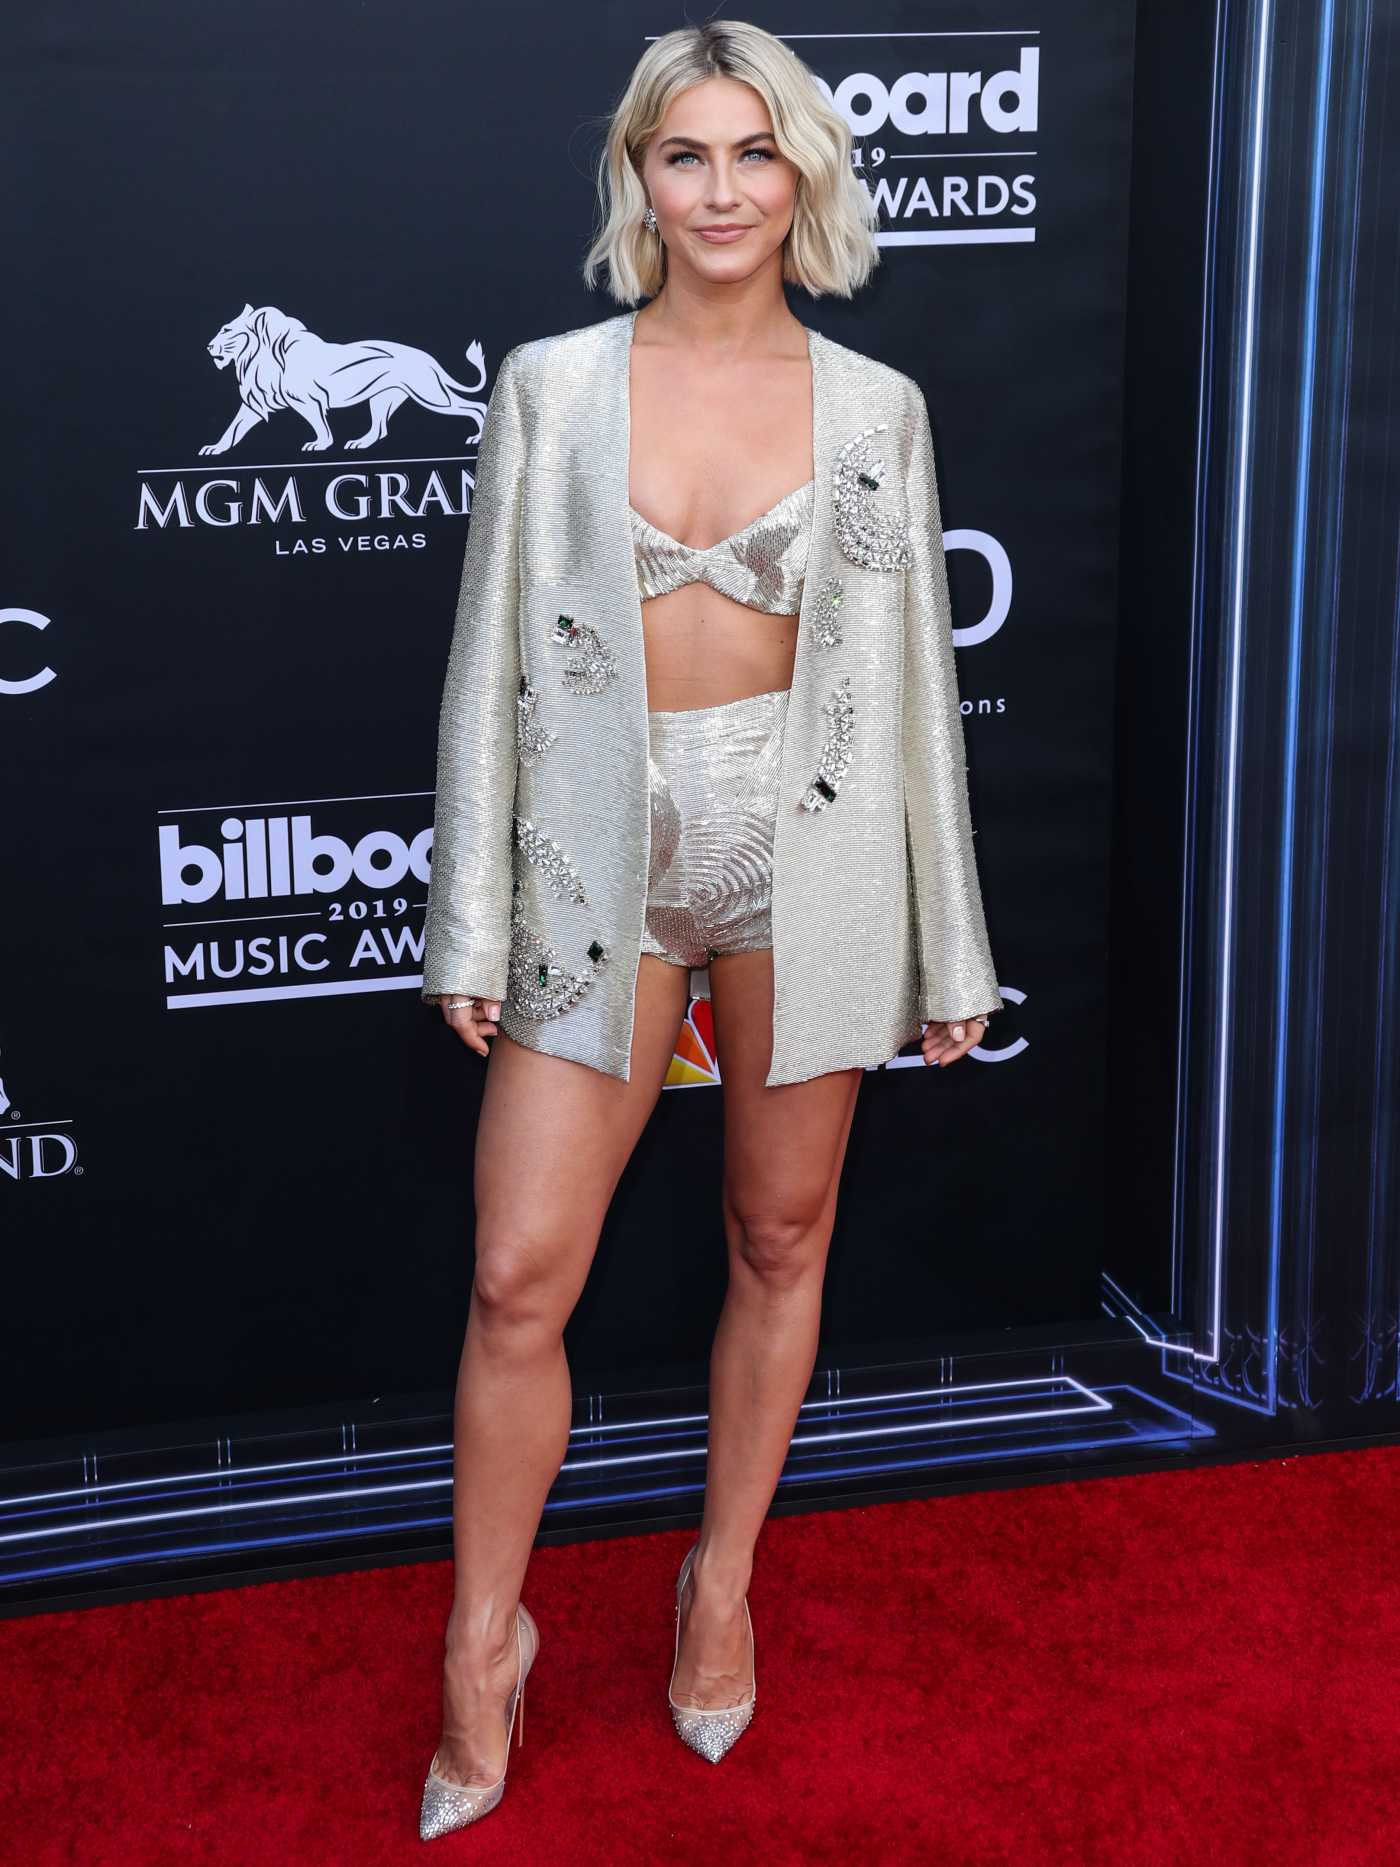 Julianne Hough Attends 2019 Billboard Music Awards at MGM Grand Garden Arena in Las Vegas 05/01/2019